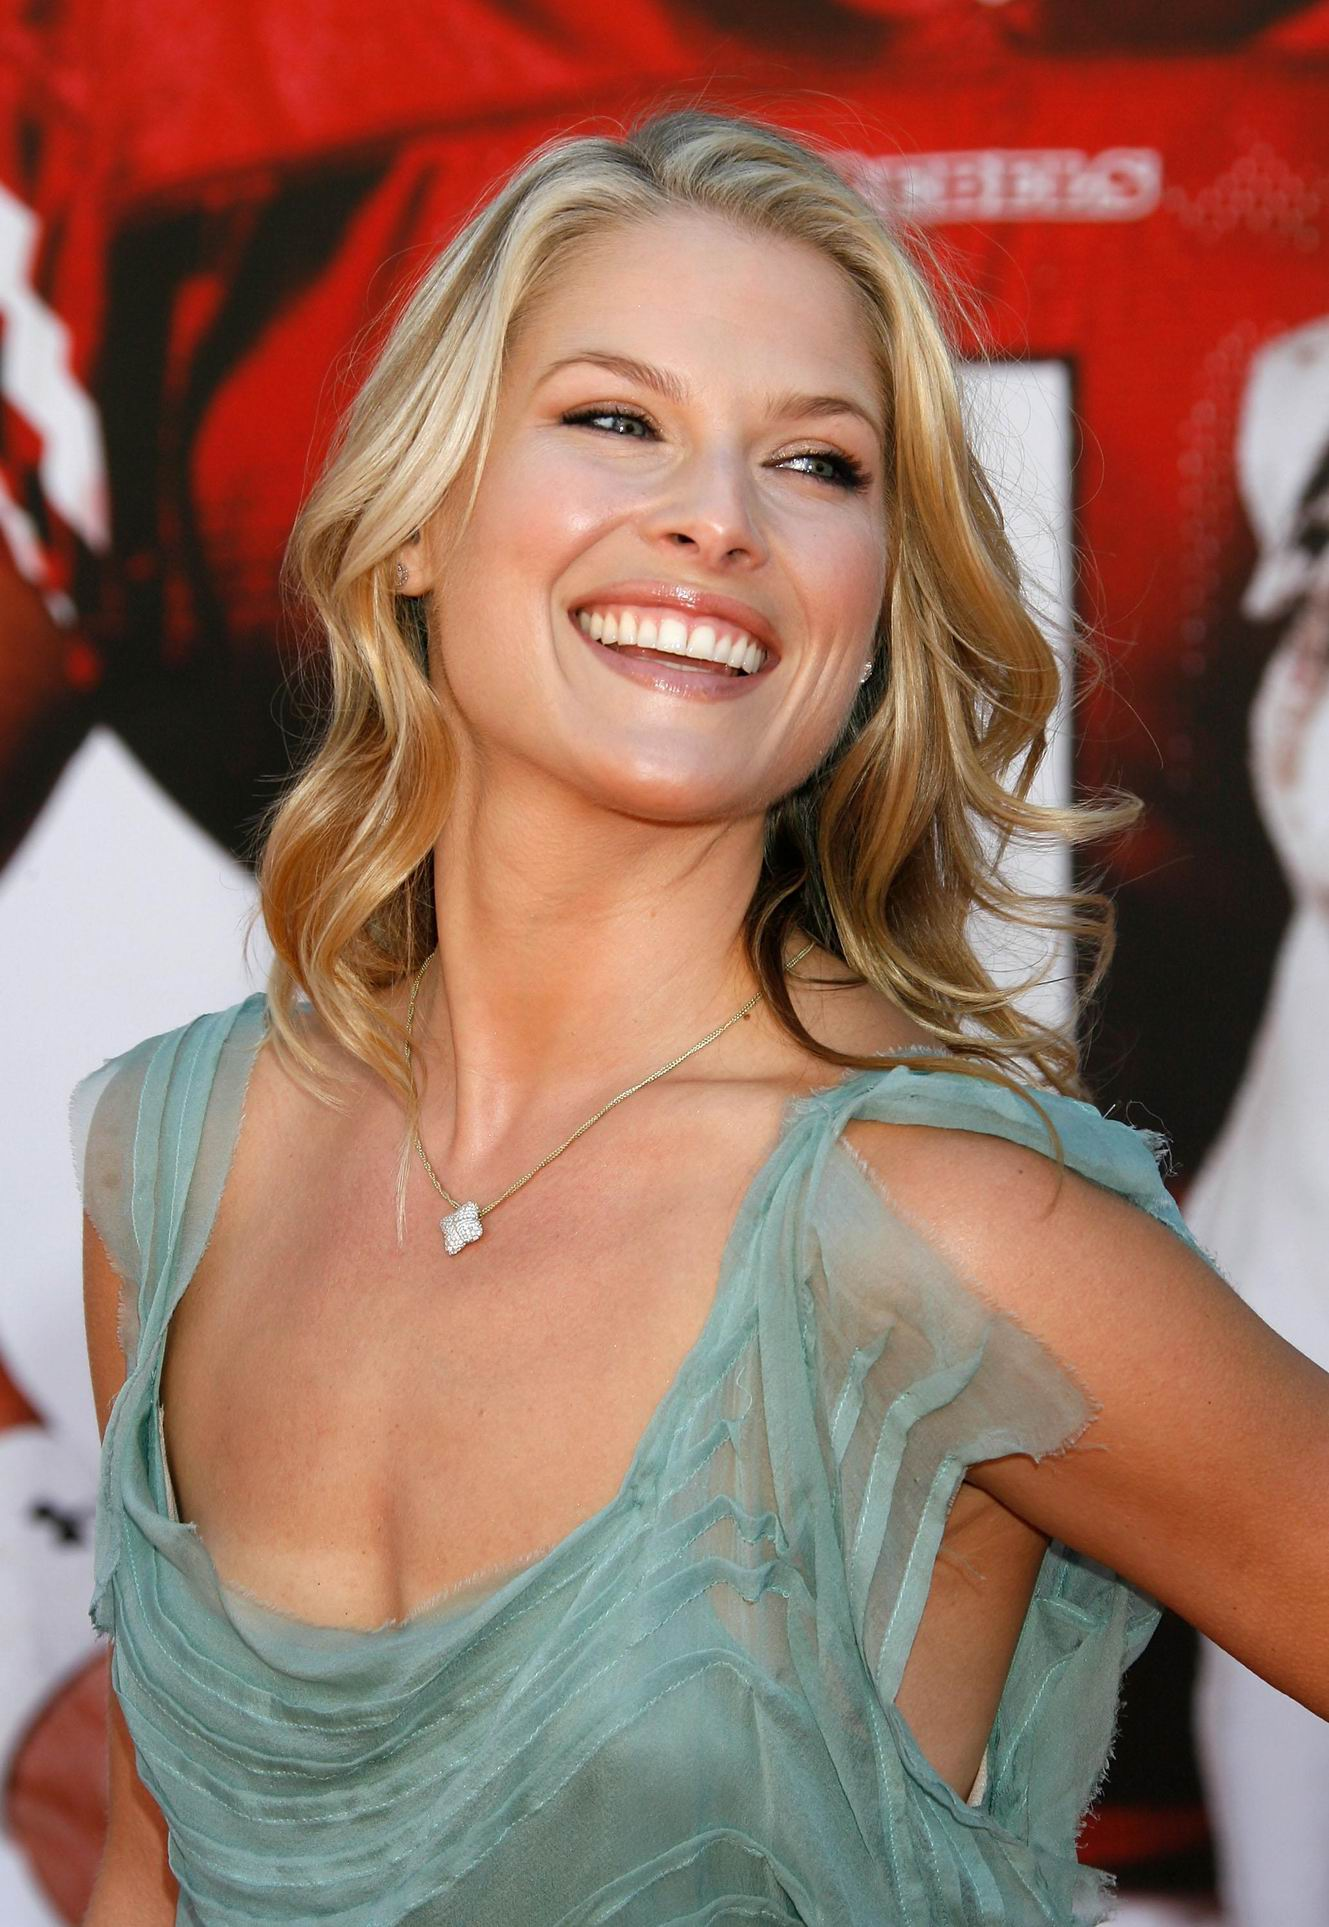 Ali larter Wallpaper 9 With 1329 x 1927 Resolution ( 299kB )